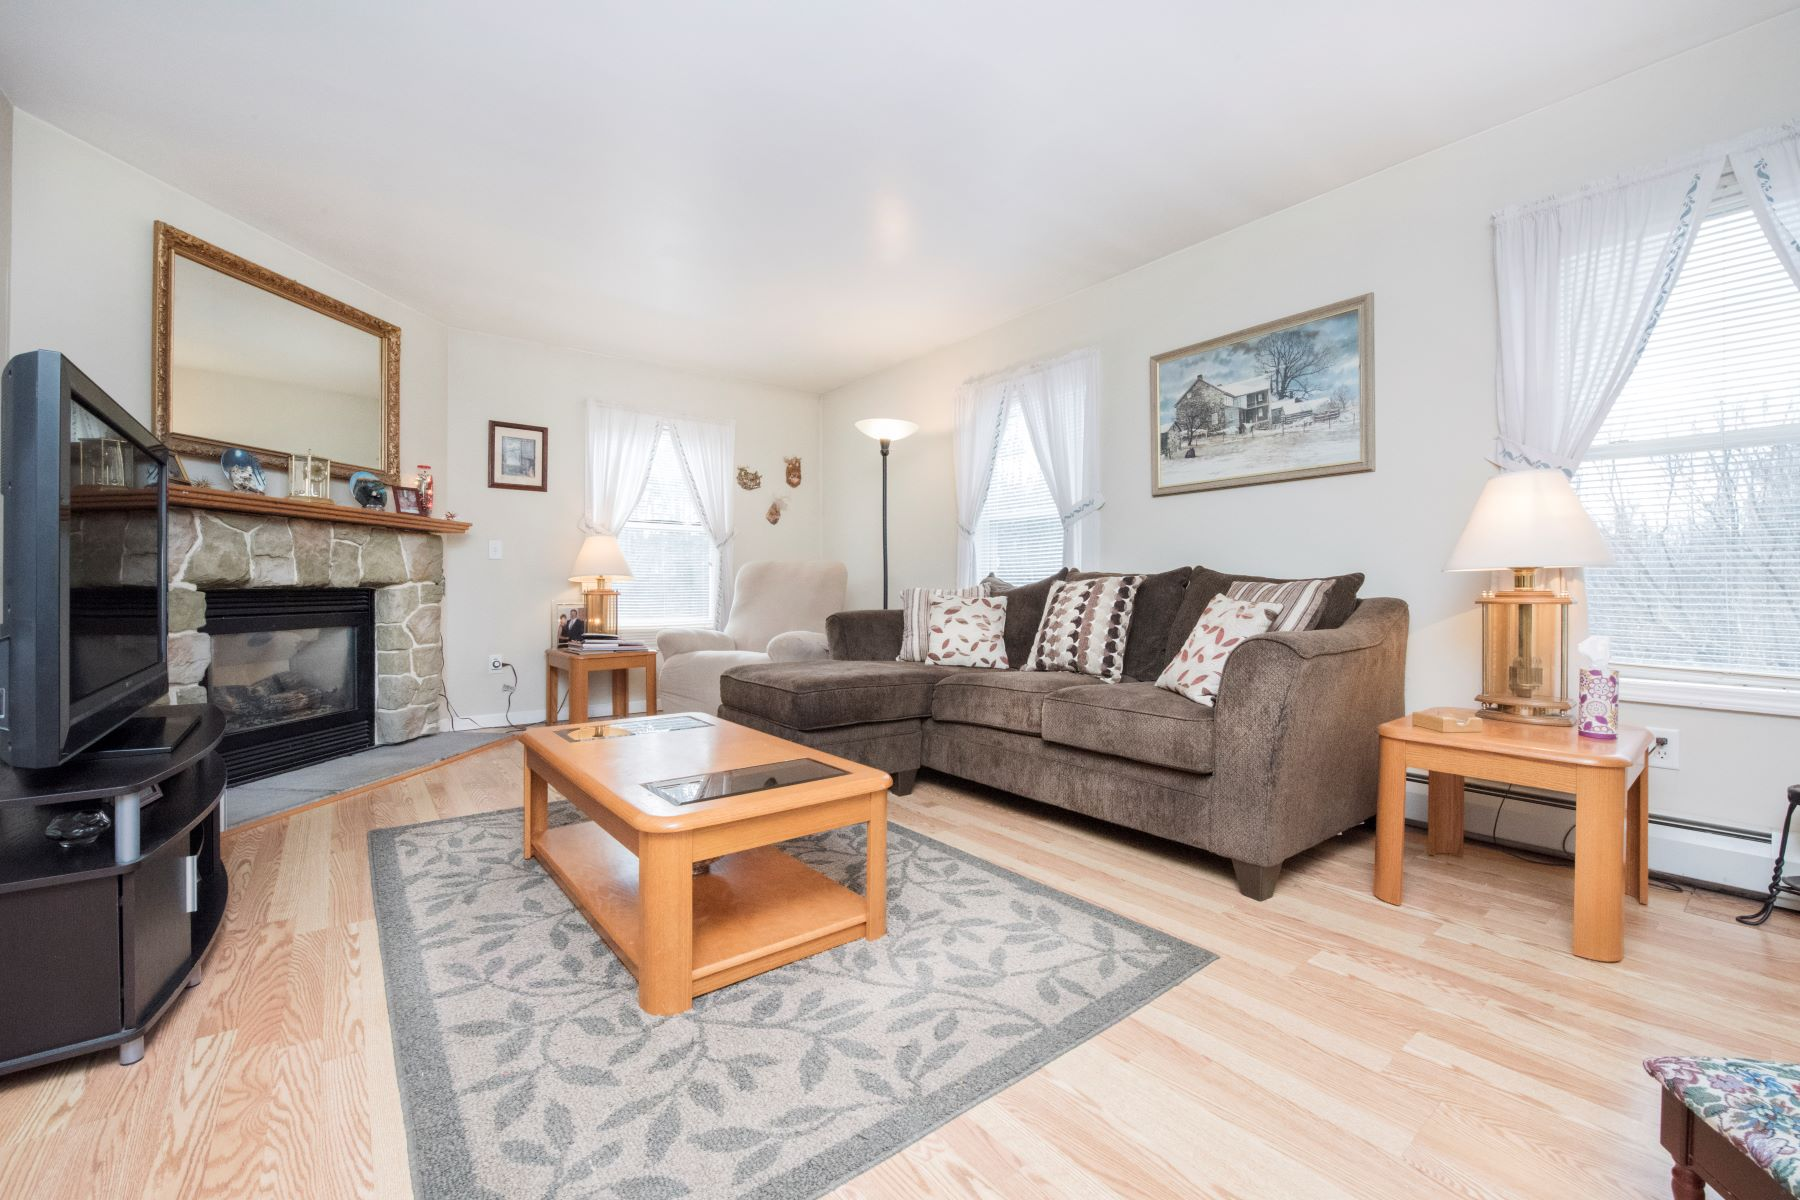 Single Family Homes for Sale at Spacious Cape with Distant Views 1474 County Rd Sheffield, Massachusetts 01257 United States